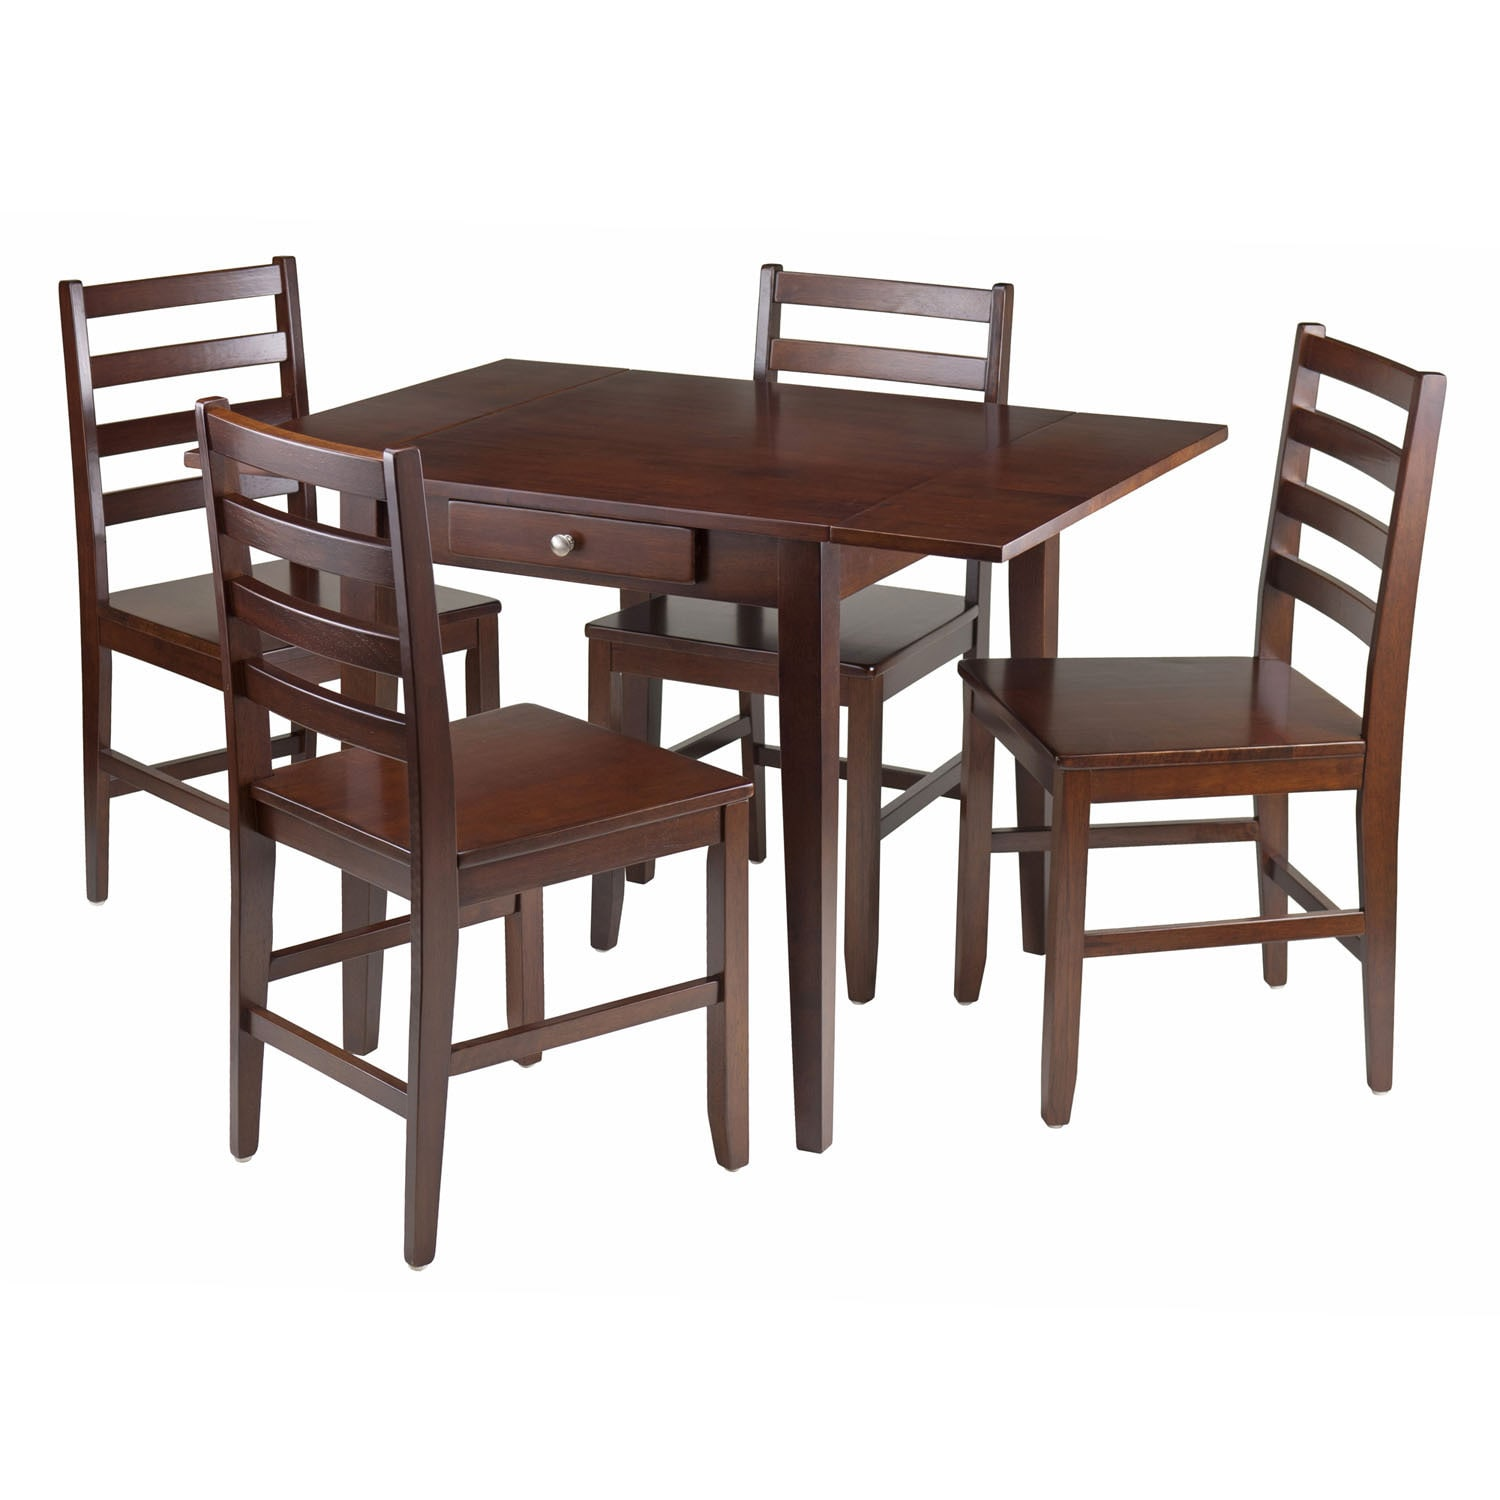 Winsome 5-piece Hamilton Drop-leaf Dining Table with 4 La...